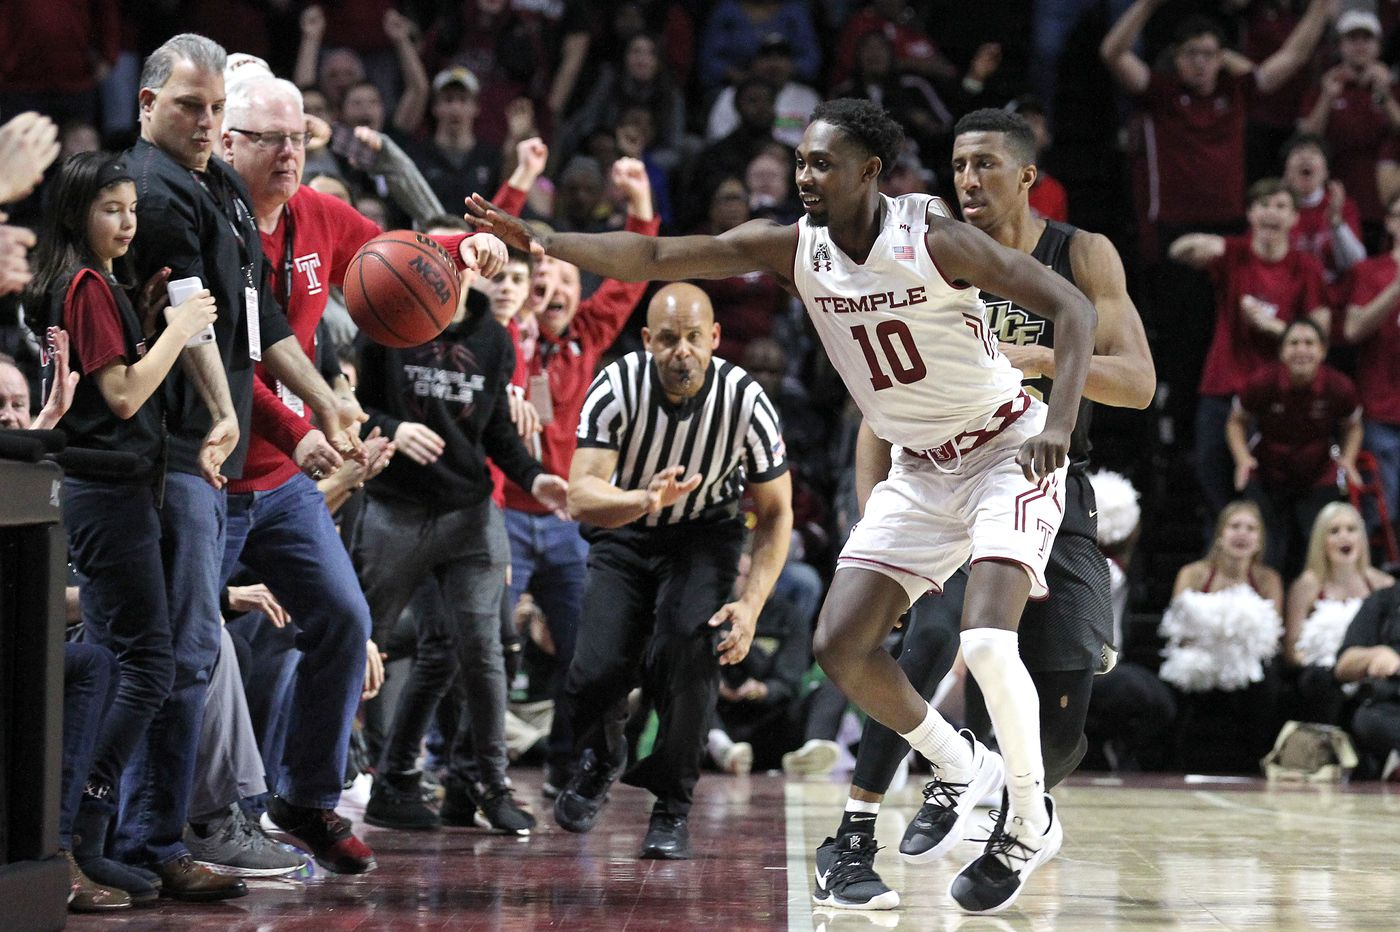 AAC tournament: Temple will play the winner of Wichita State-East Carolina in quarterfinal